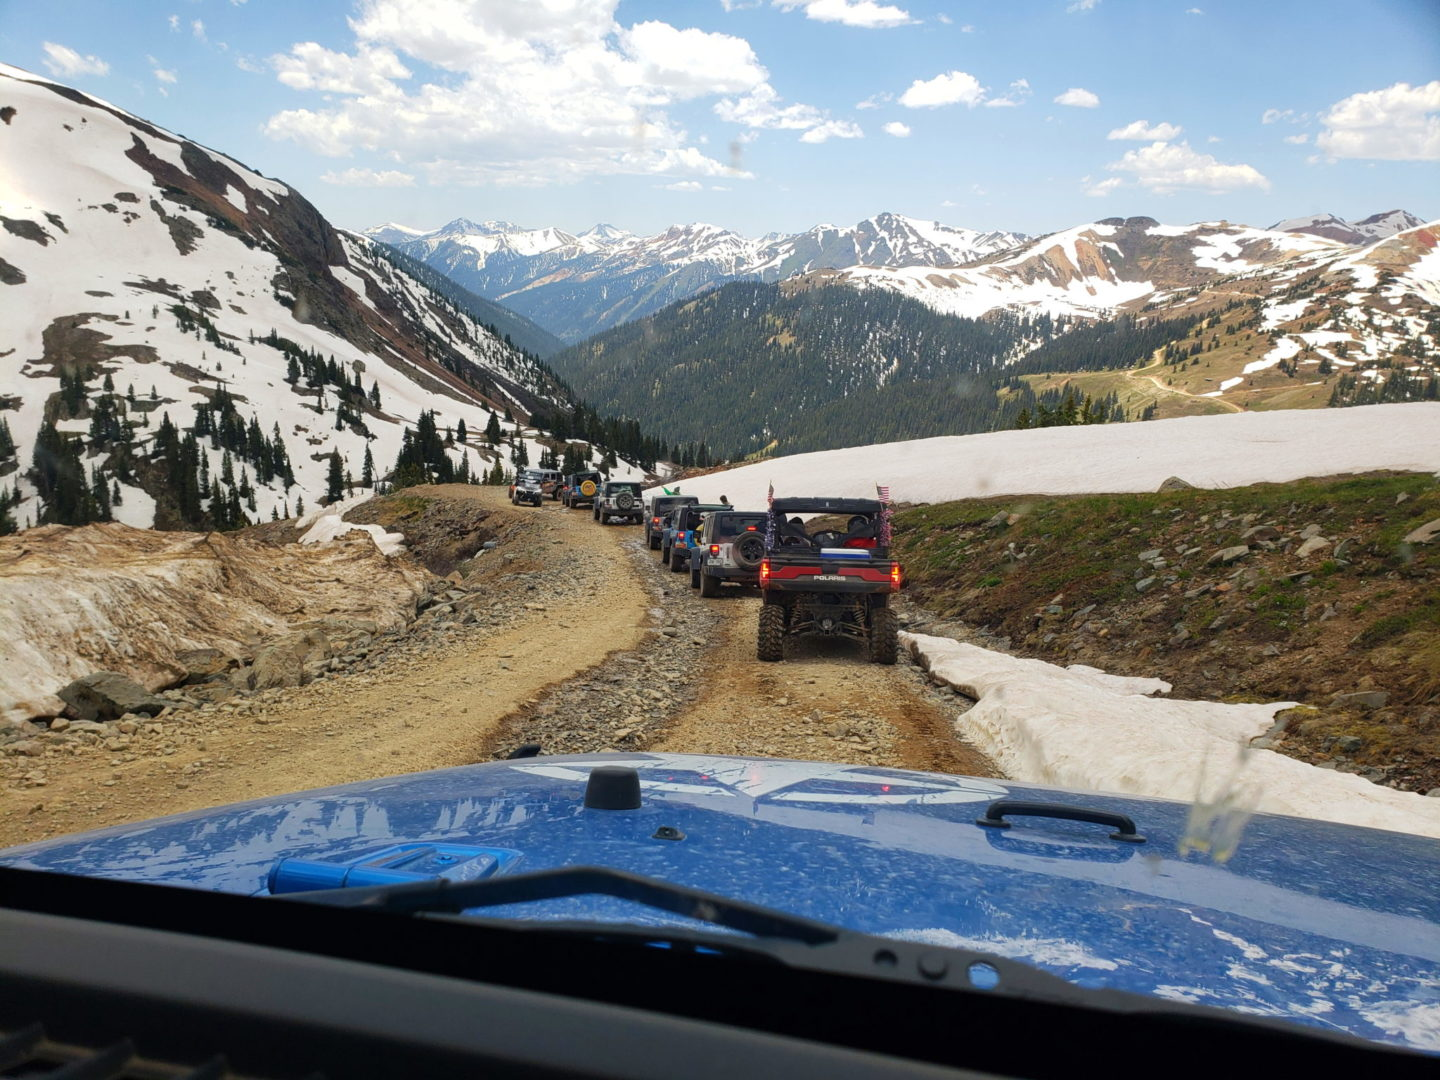 Traffic jam near Silverton